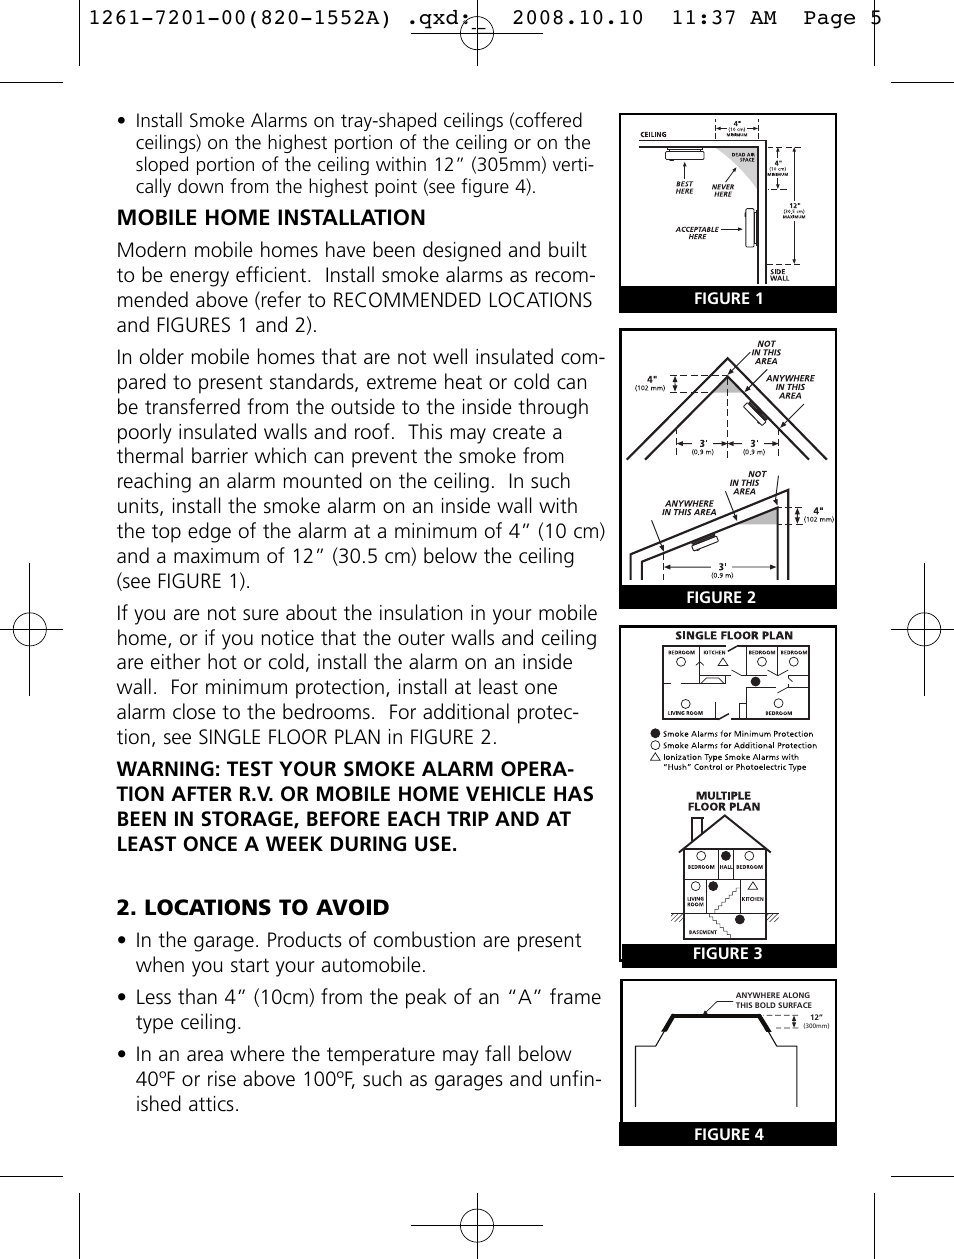 Firex Smoke Alarm Instruction Manual Wiring Diagram On Kidde Mobile Home Installation Locations To Avoid I User Page 954x1259